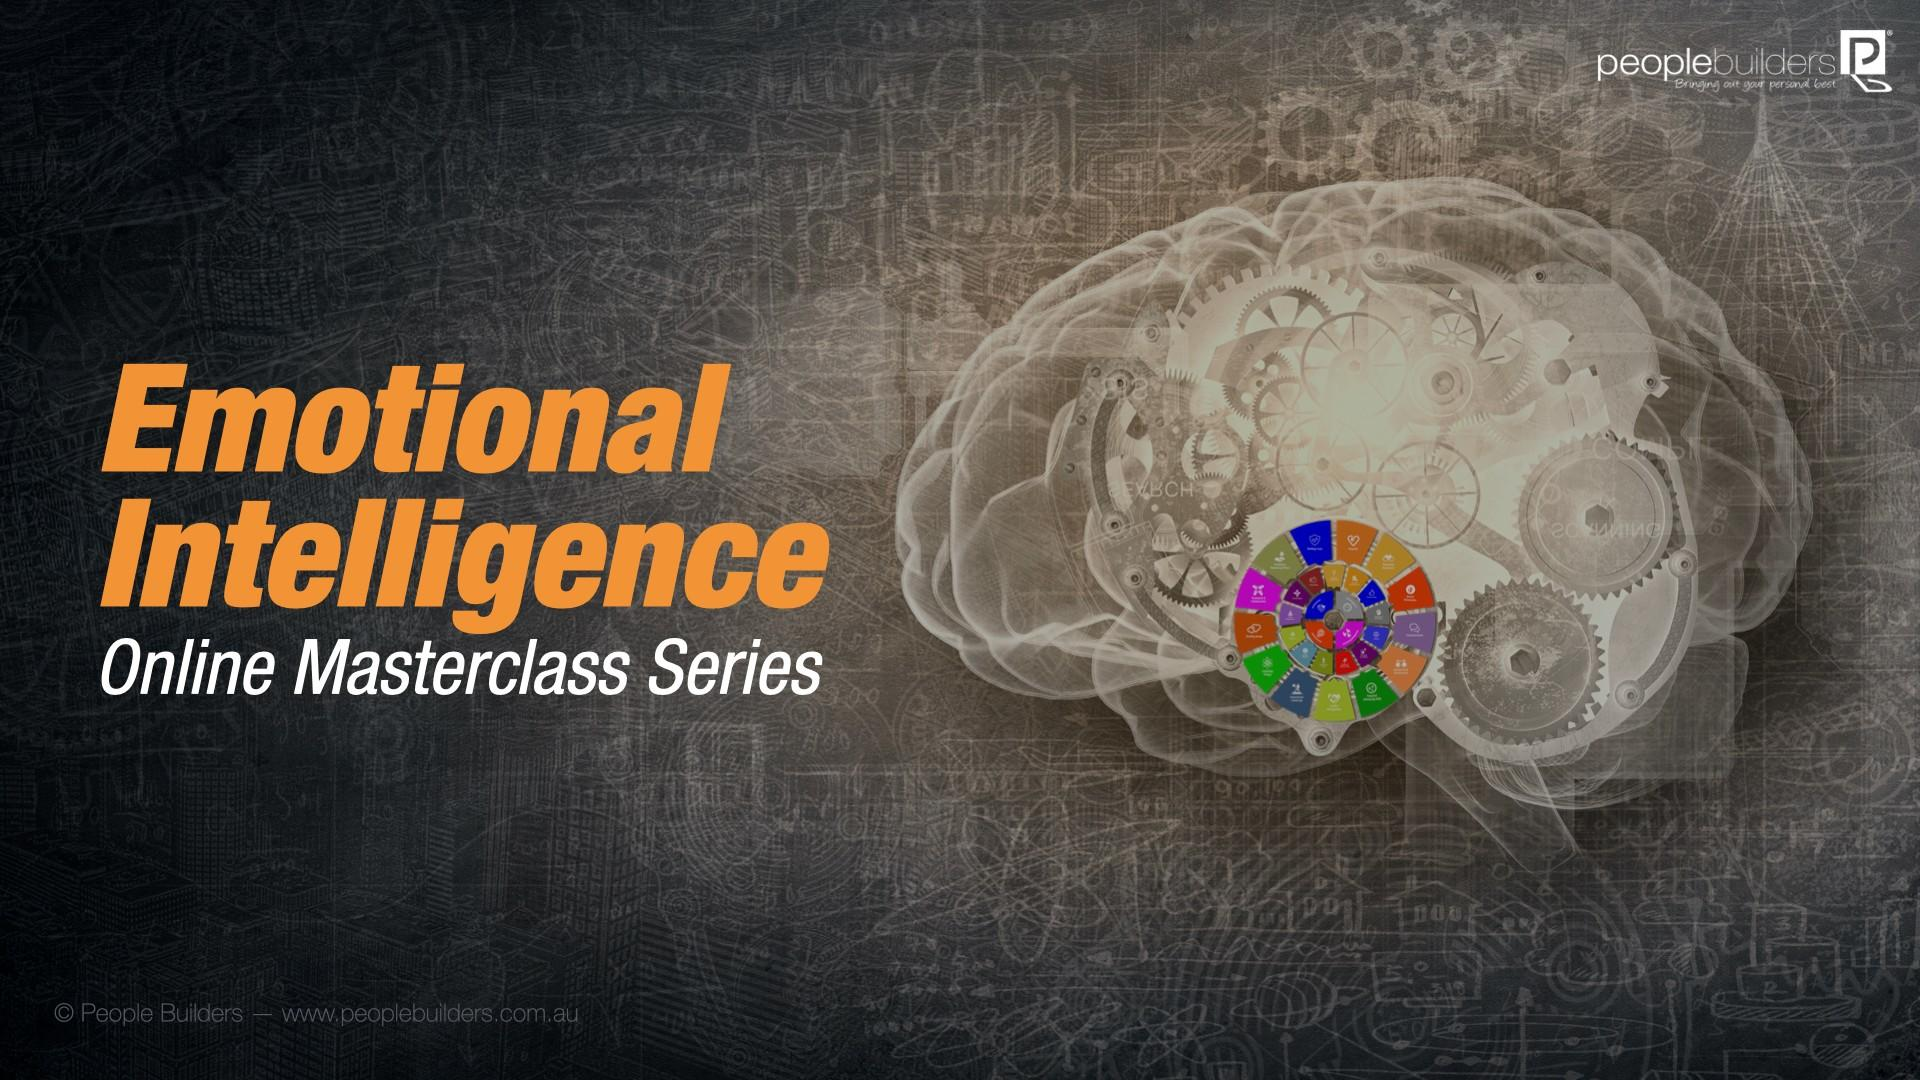 Emotional Intelligence Online Masterclass series poster showingBrain with gears and the People Builders 26 competencies wheel.